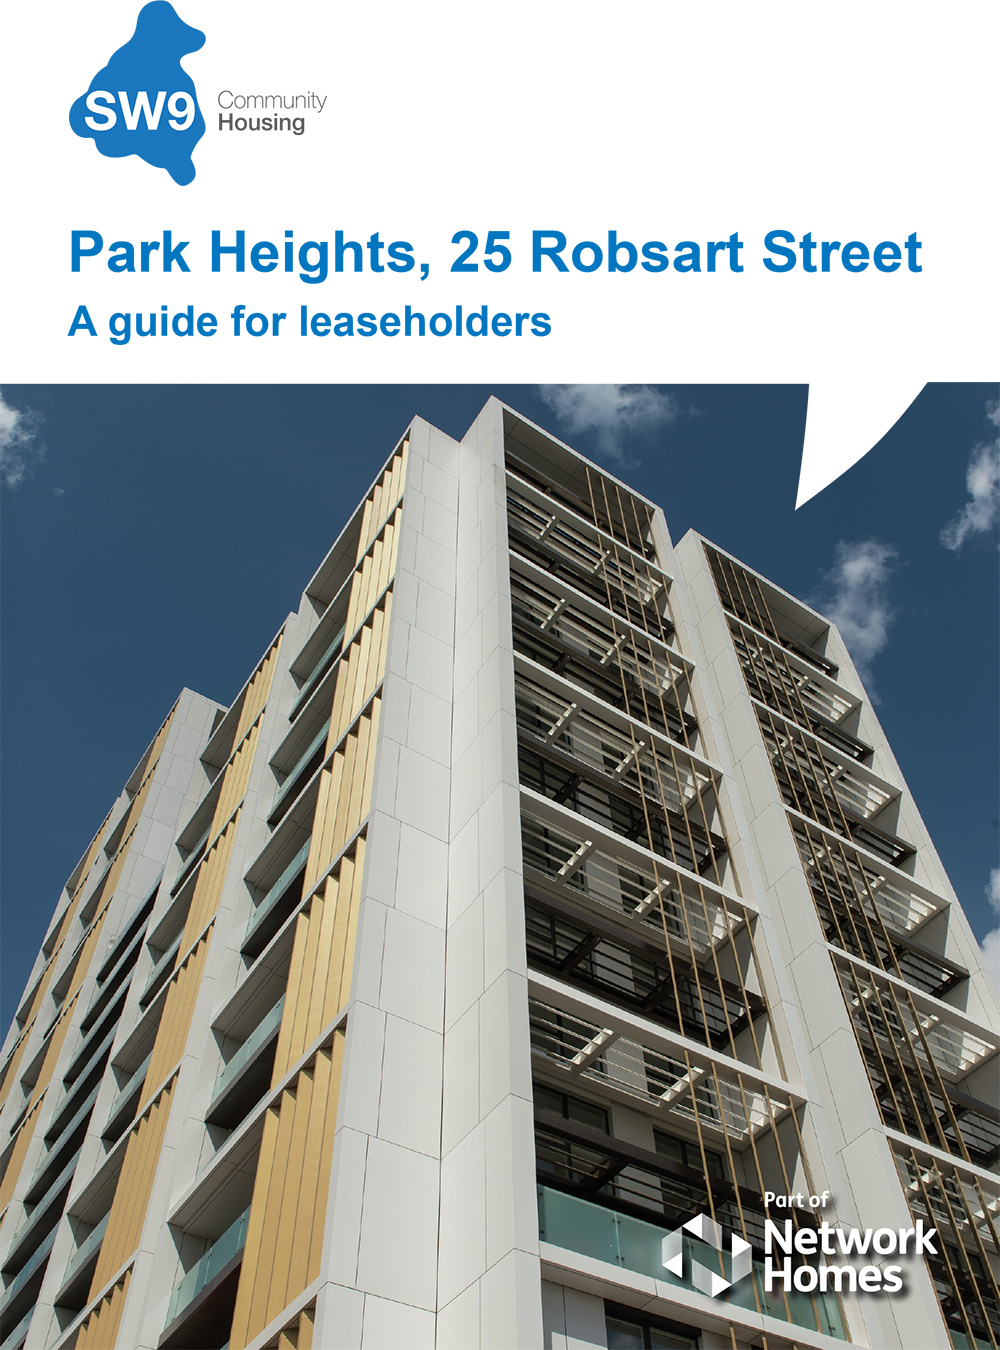 SW9 Park Heights Guide for Leaseholders front cover